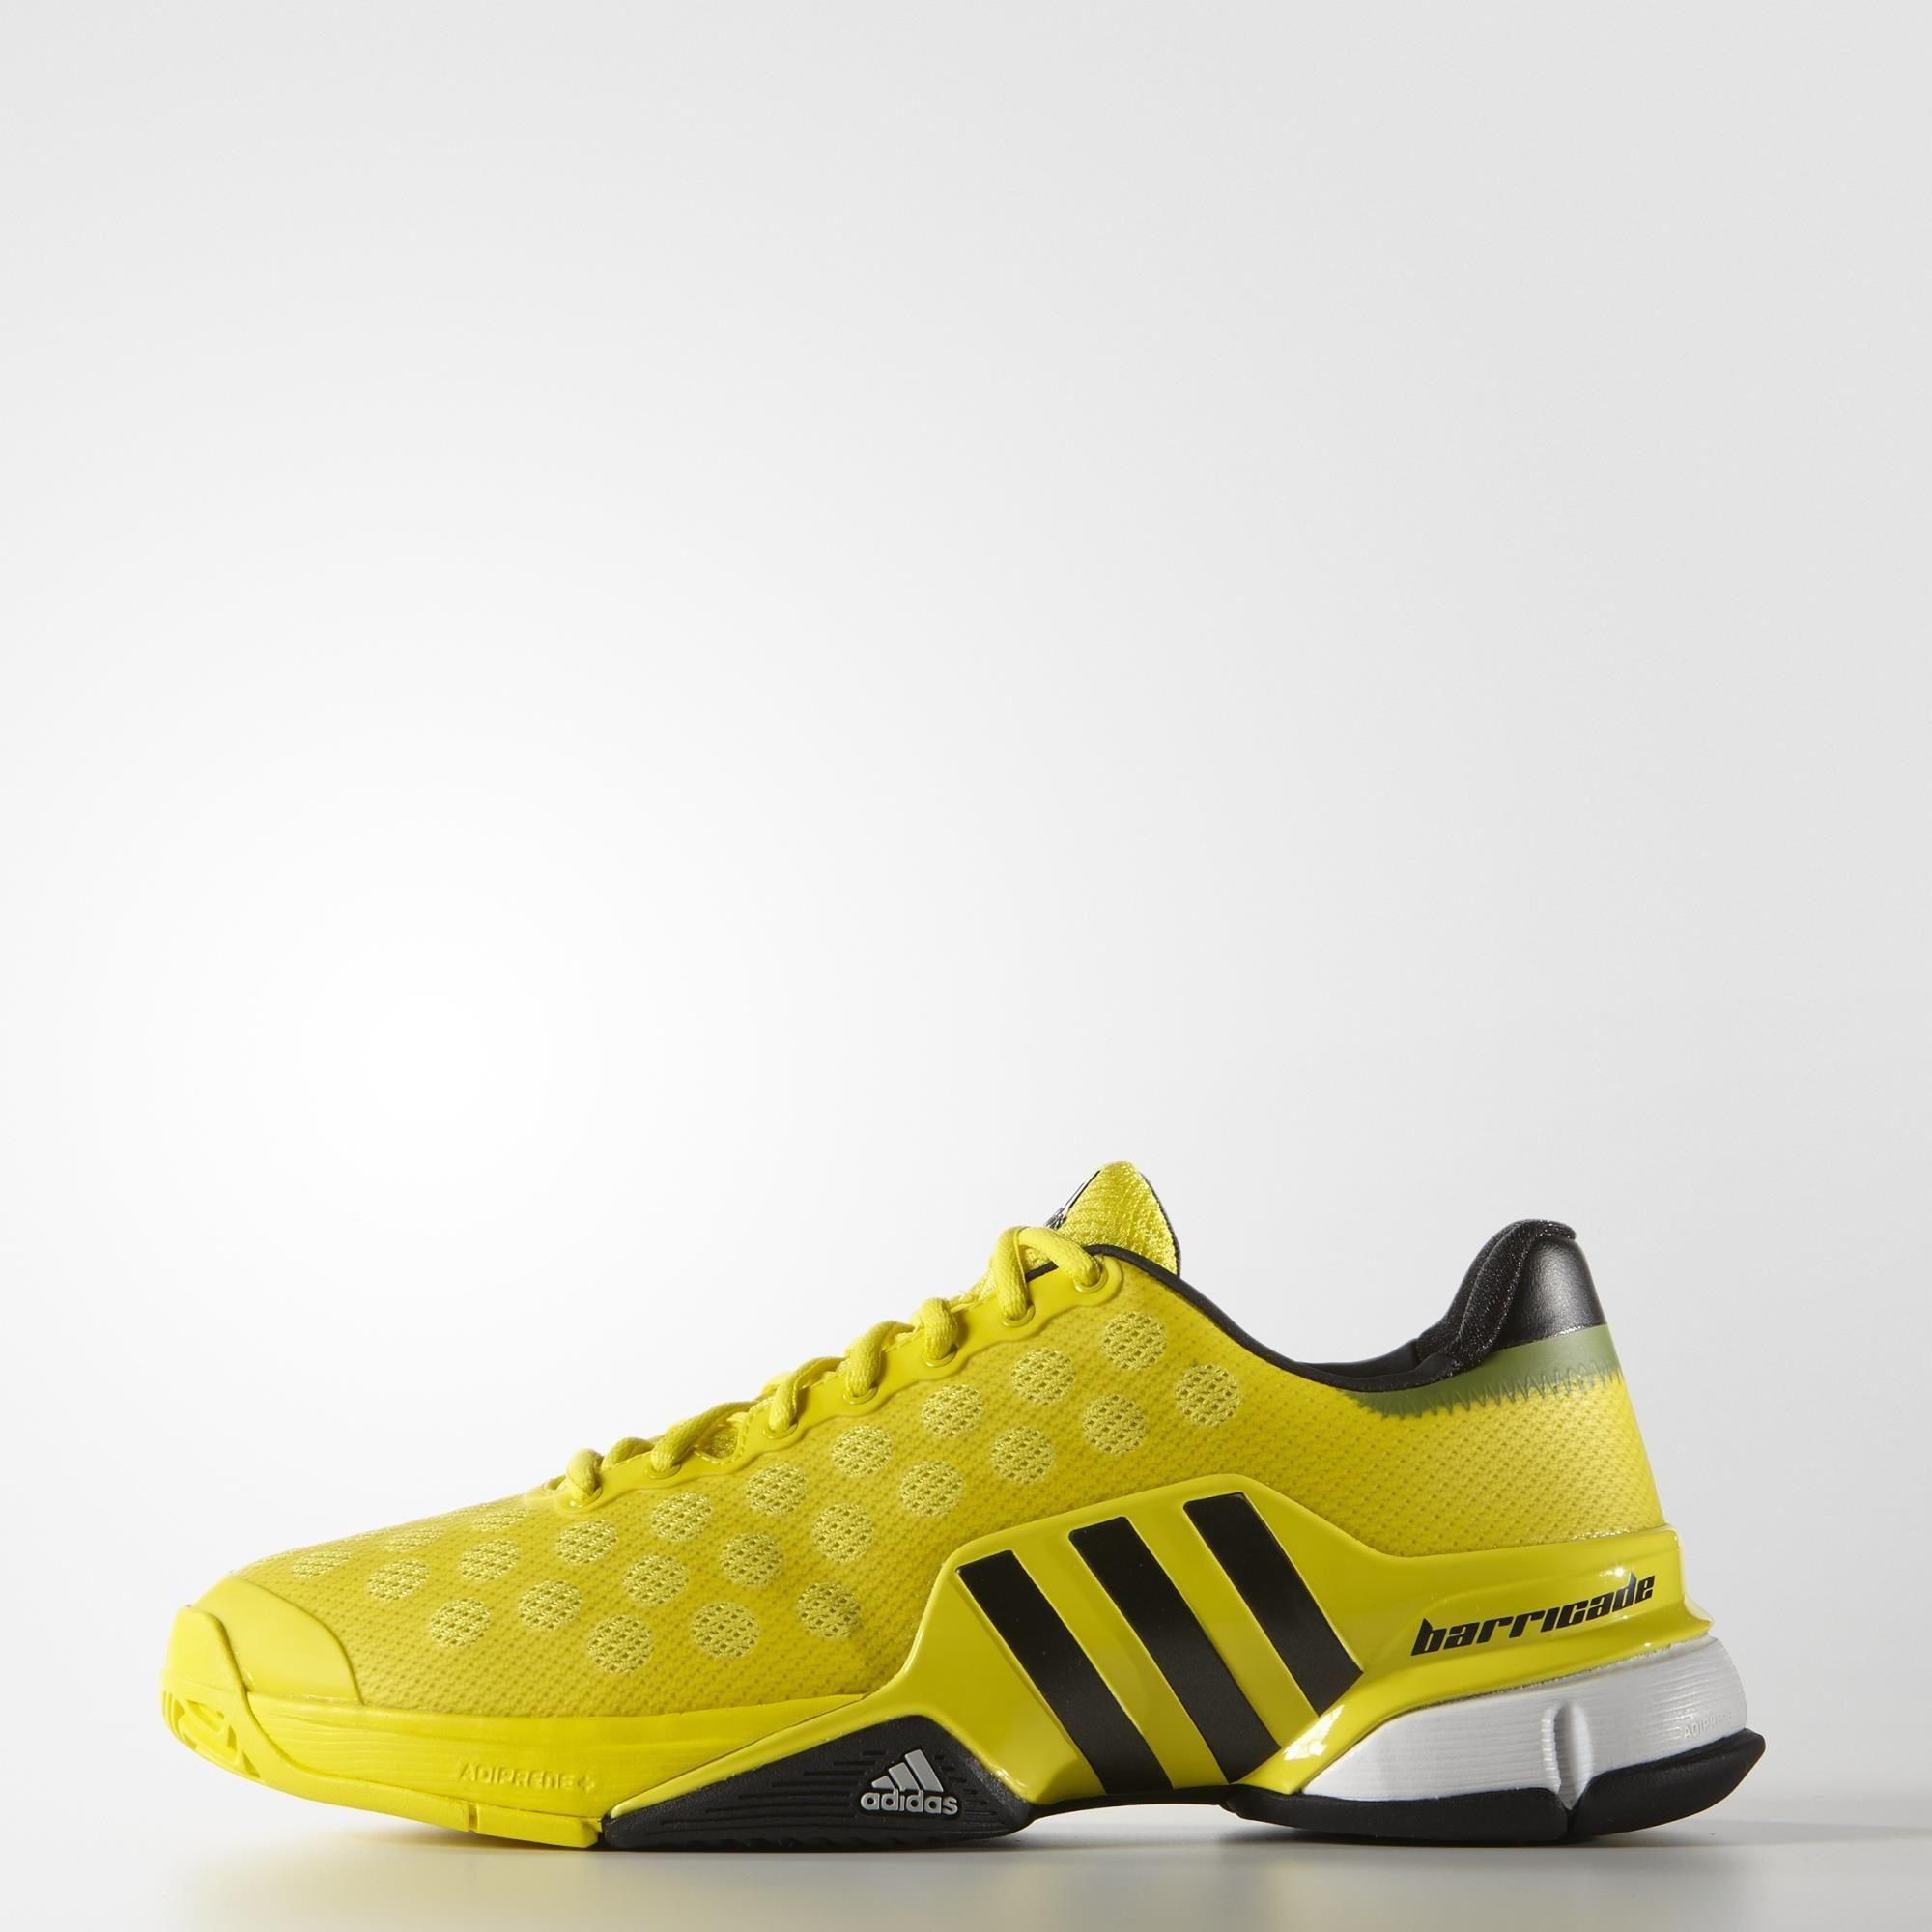 Adidas Mens Barricade 2015 Tennis Shoes - Bright Yellow